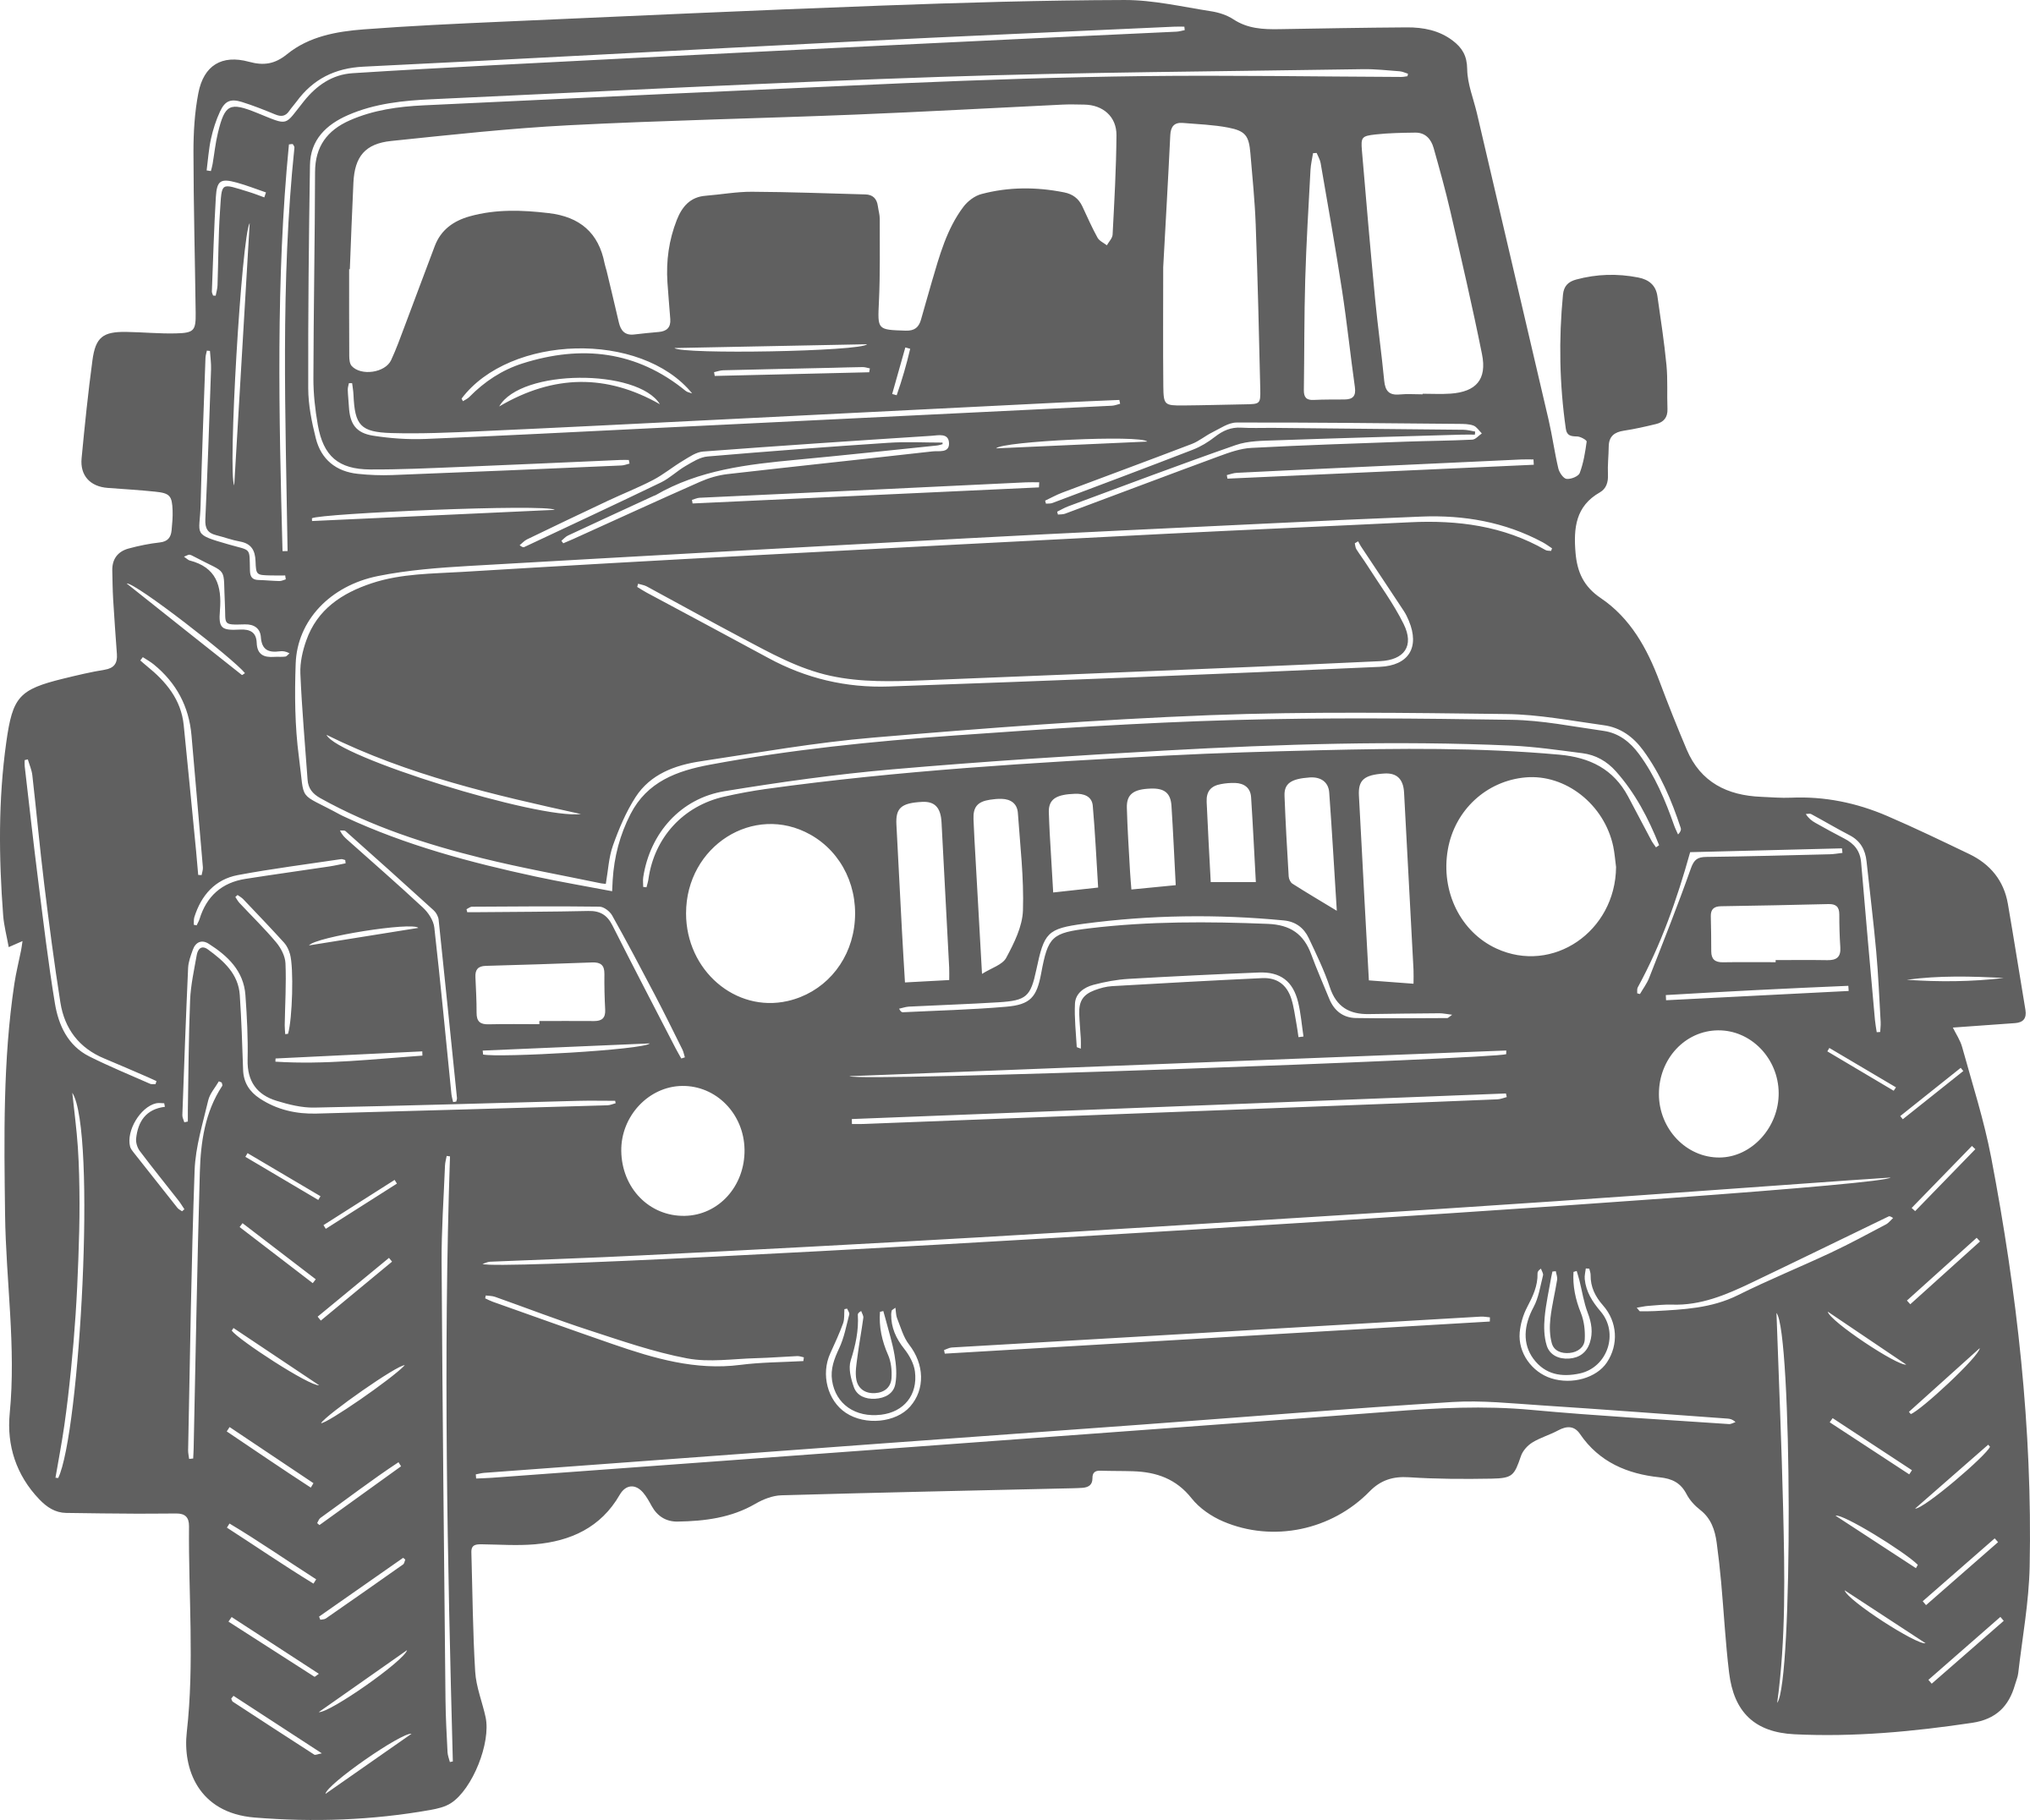 Jeep clipart vector, Jeep vector Transparent FREE for.